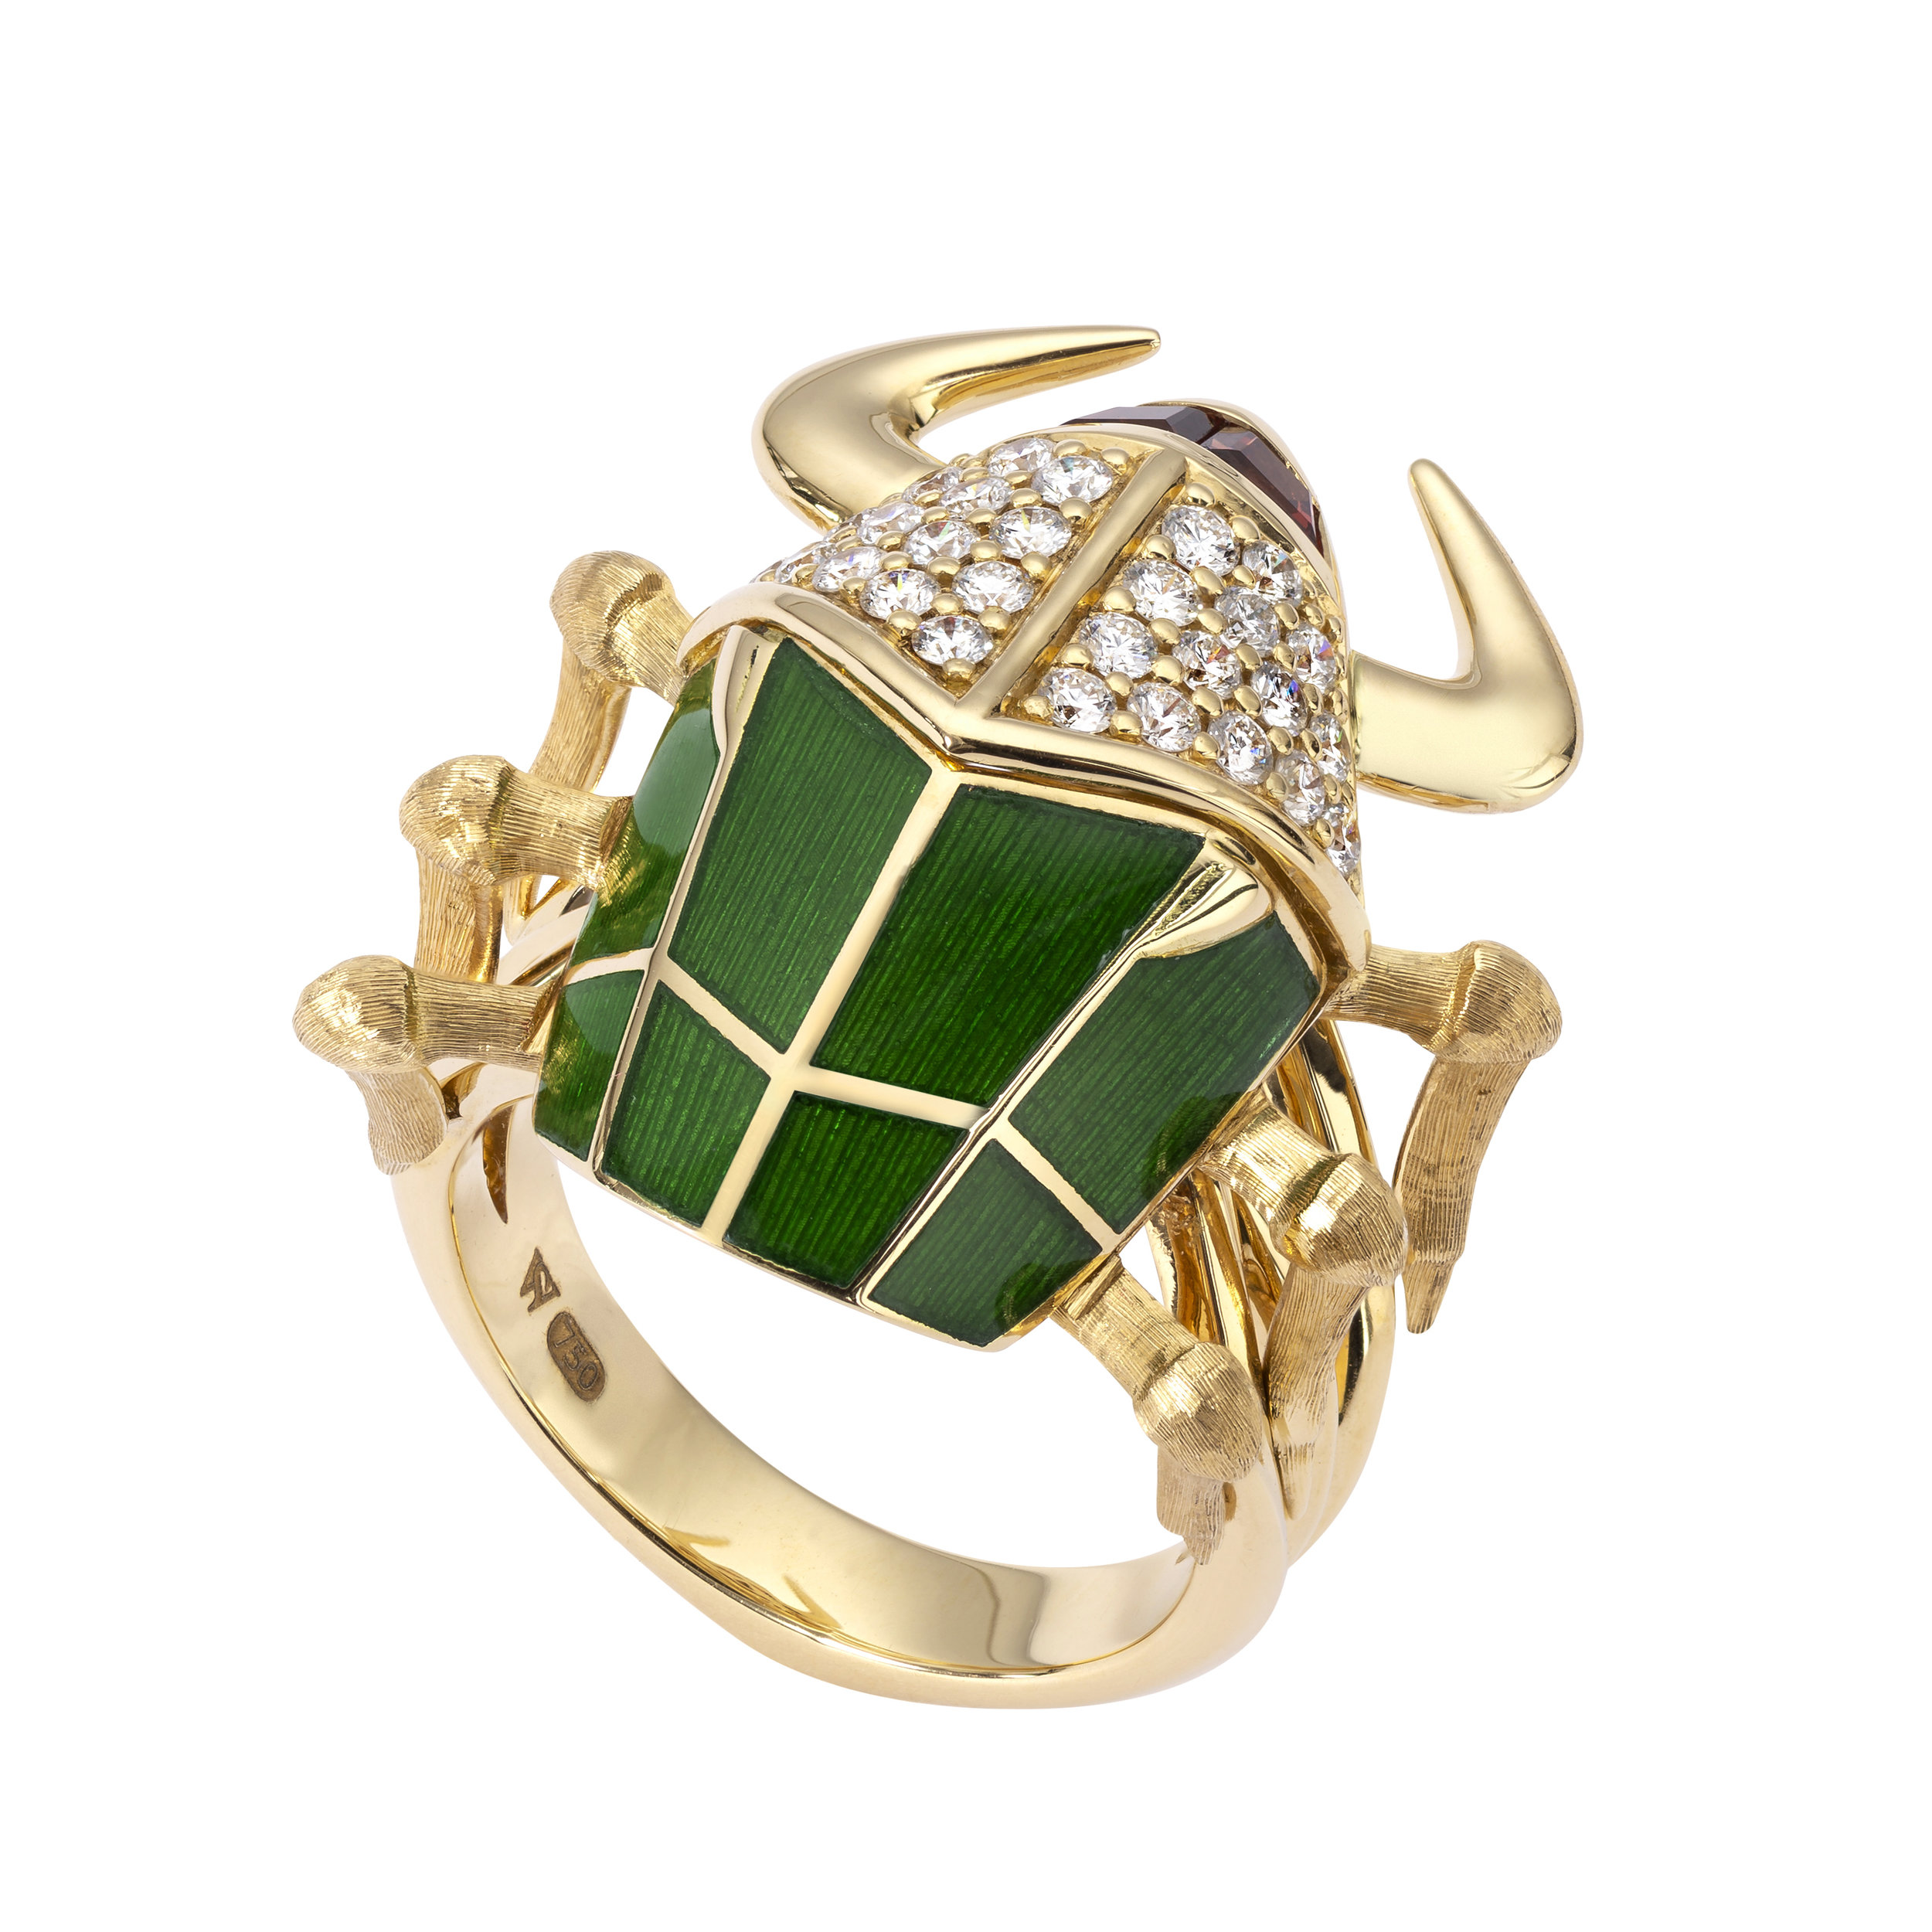 STEPHEN WEBSTER JEWELLERY | Jitterbug Toro Beetle Enamel Ring; $4,500 |